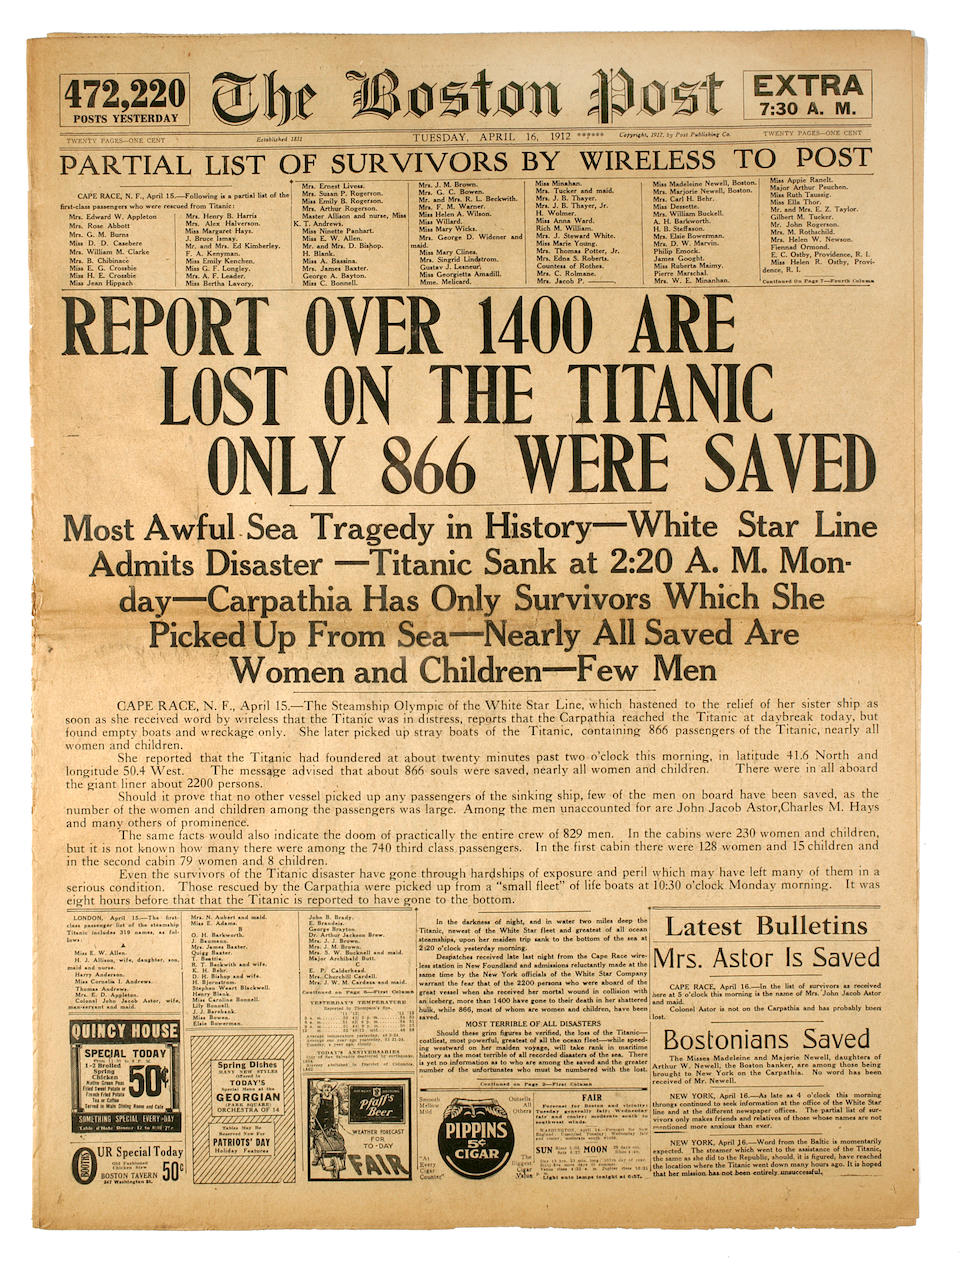 [TITANIC] A collection of newspapers relating to the disaster  16 x 11 in. (40.6 x 27.9 cm.) 4